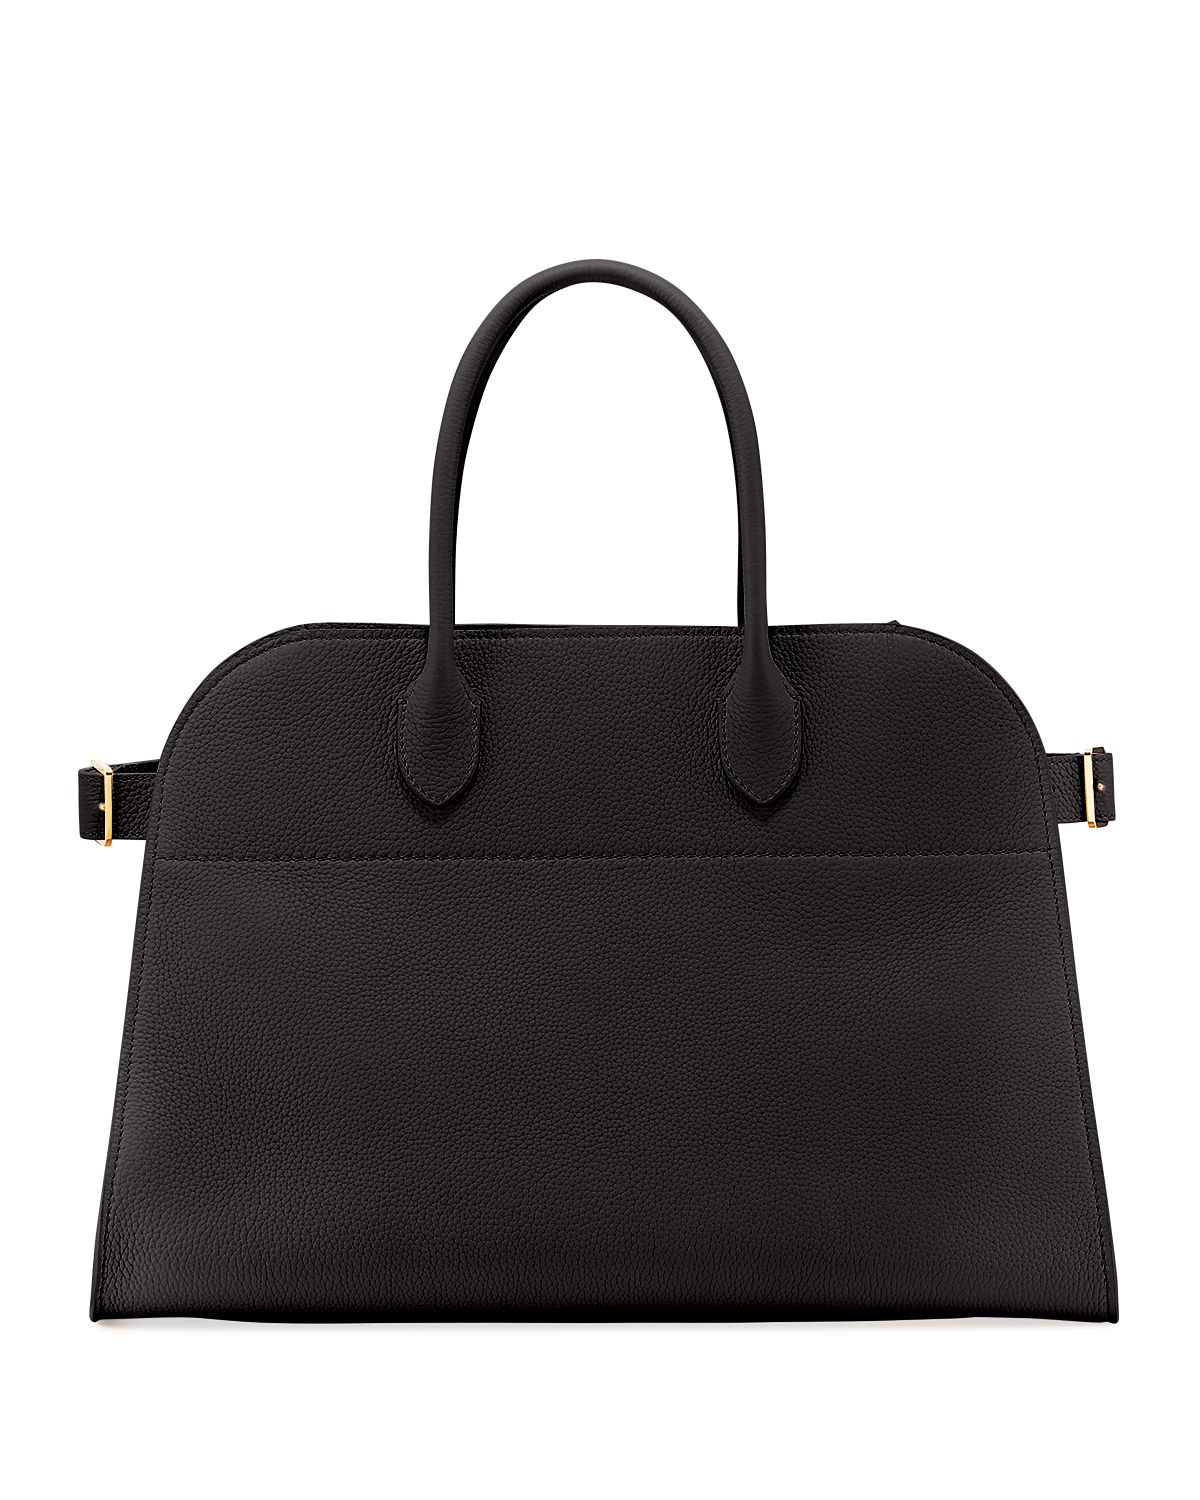 The Row Margaux 15 Grained Leather Top Handle Bag Neiman